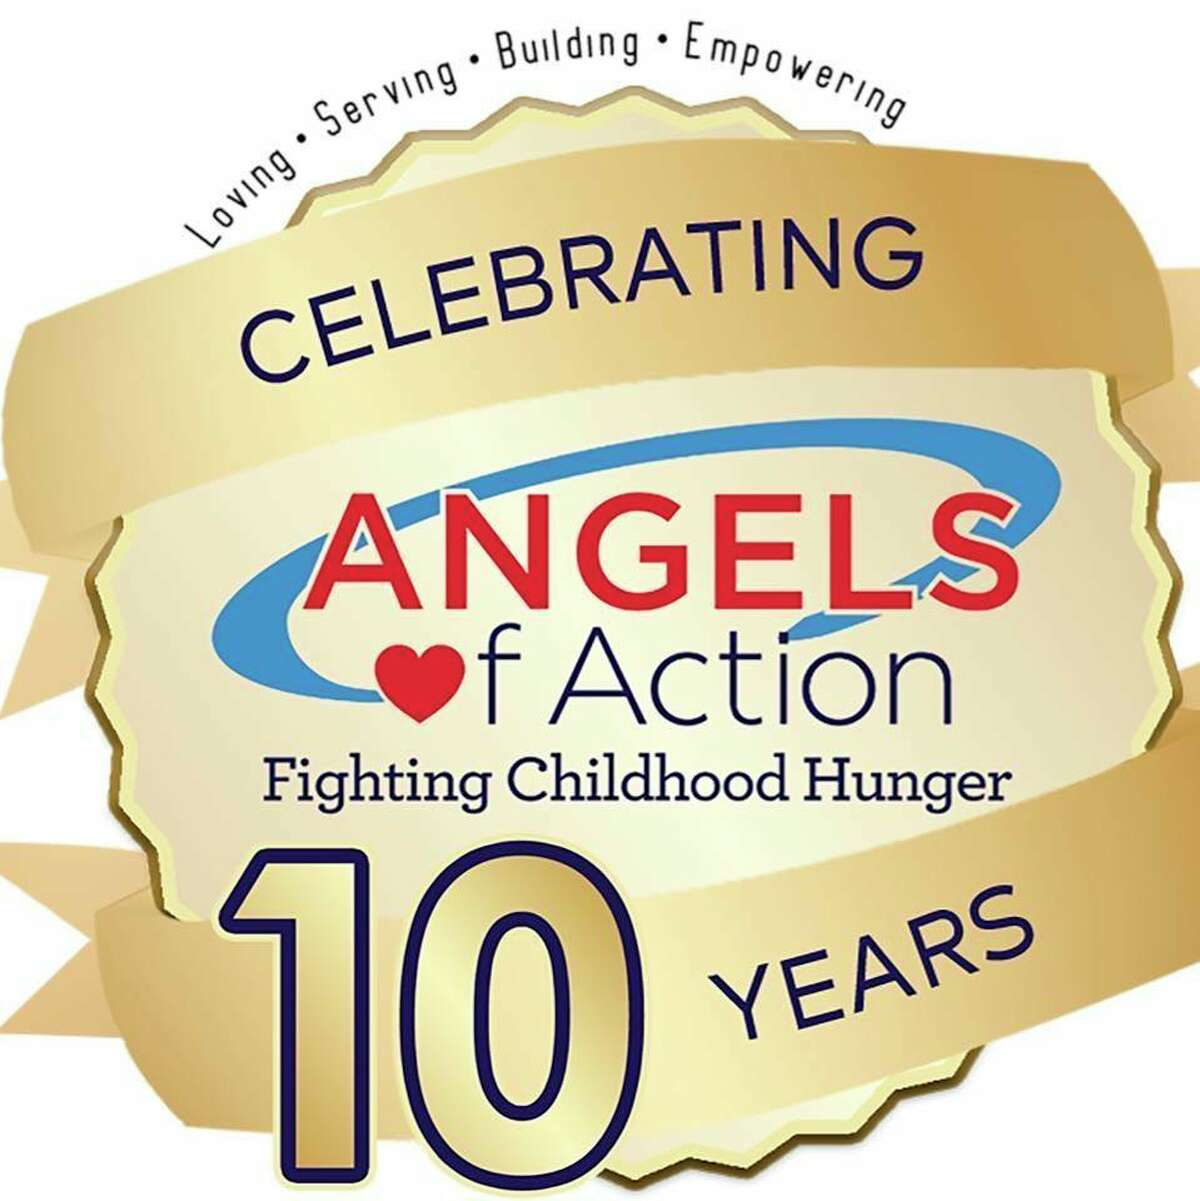 Angels of Action announced Sept. 22 that it would be canceling its 10th-anniversary Light Up the Night celebration event amid concerns around the COVID-19 pandemic.(Courtesy photo)